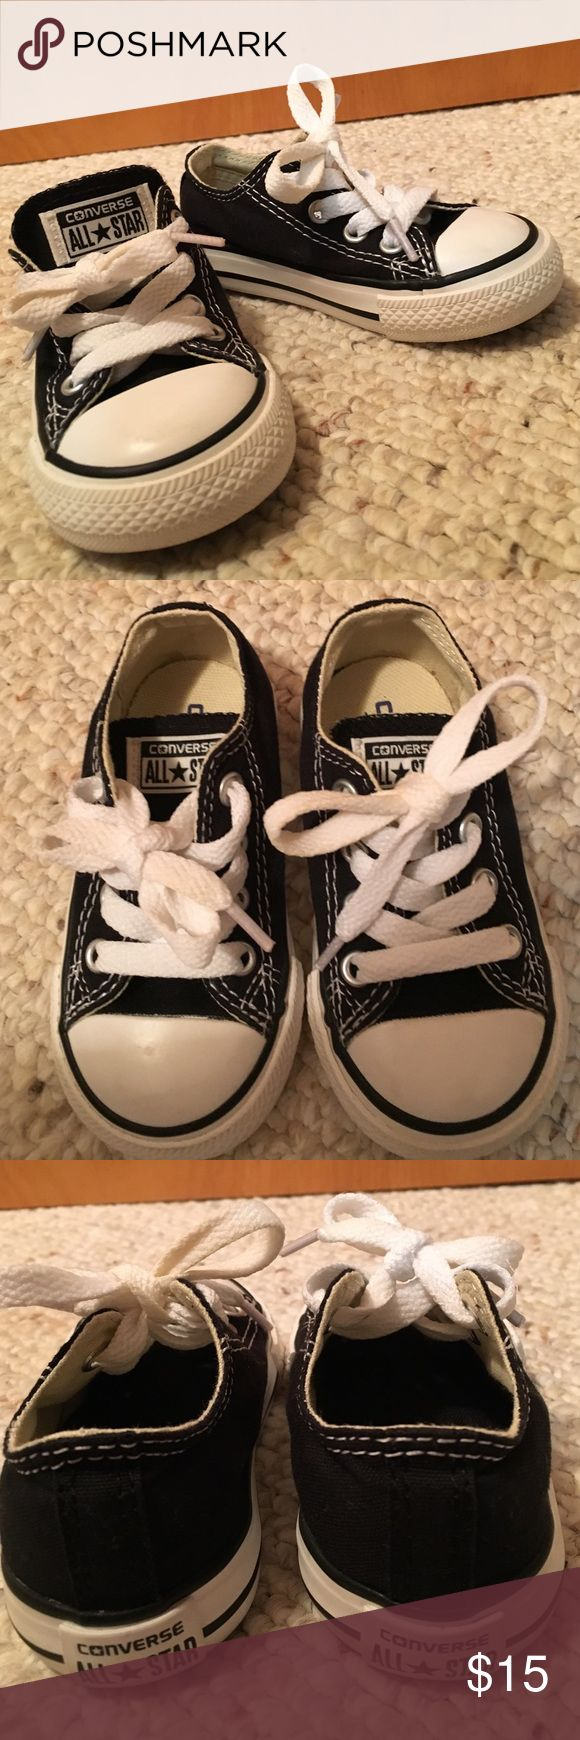 Toddler boy's Converse All Star shoes Like new! Black Converse All Star tennis shoes in Excellent condition. Converse Shoes Sneakers